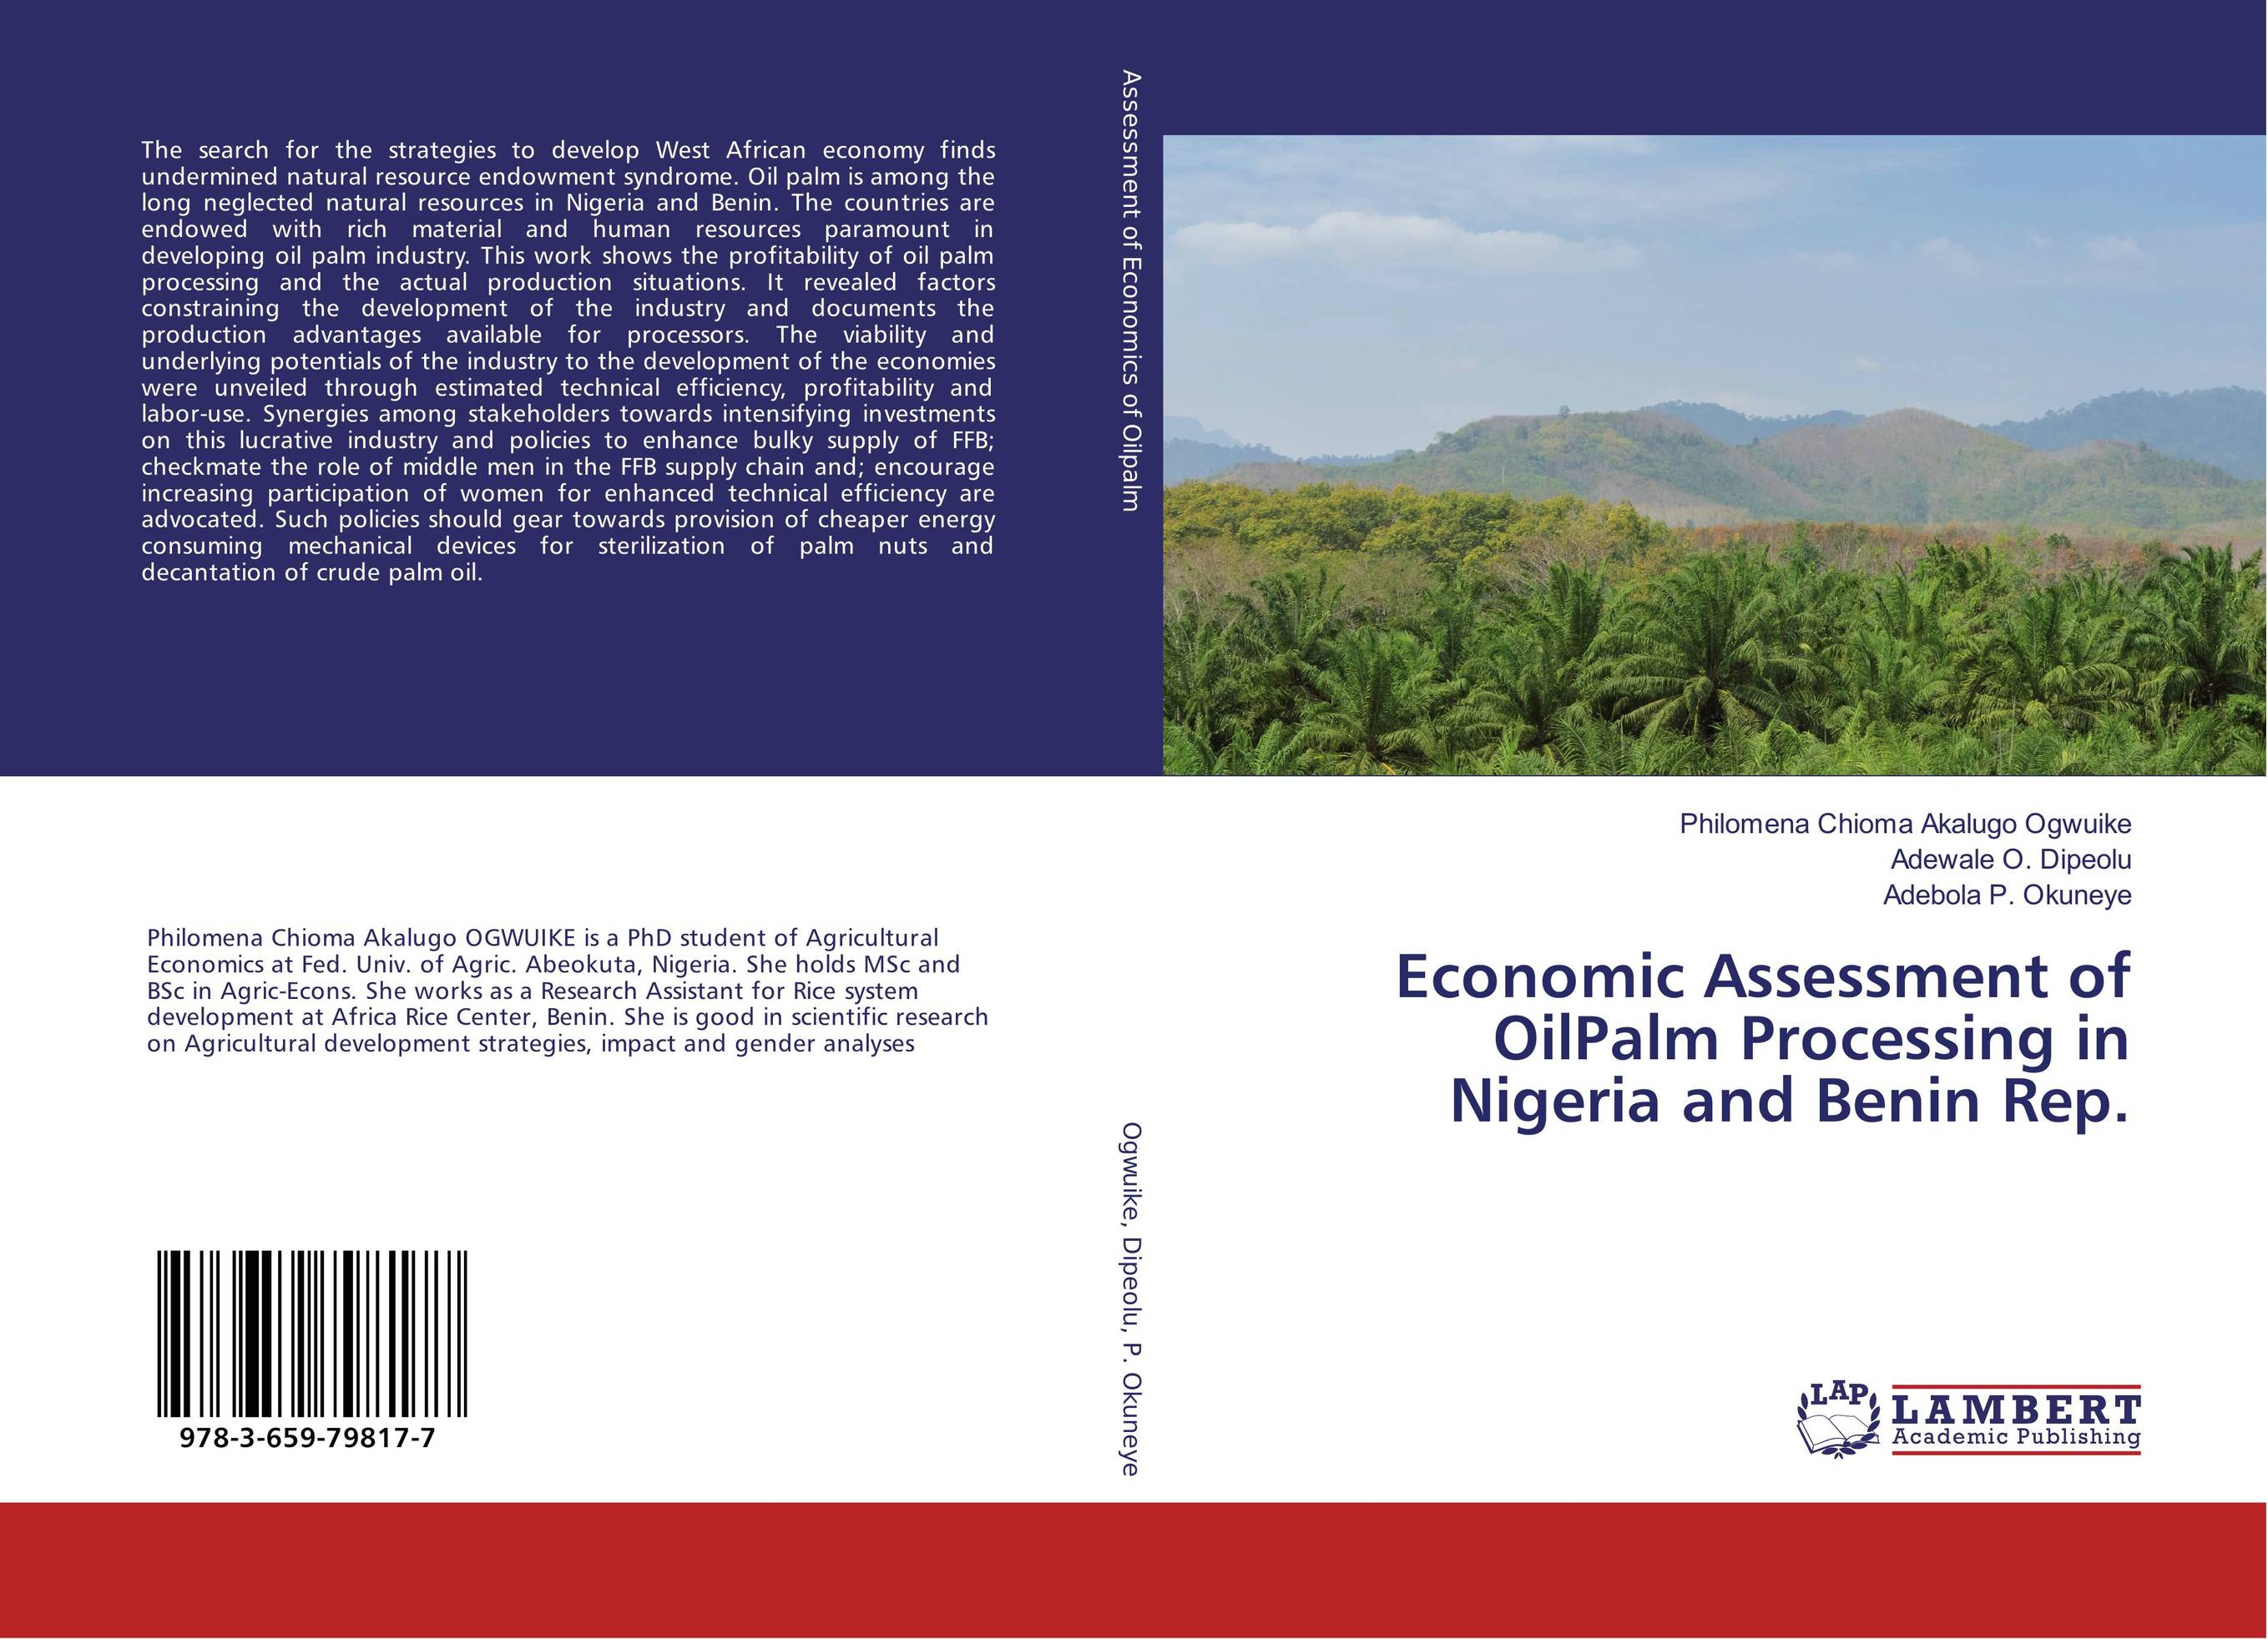 Economic Assessment of OilPalm Processing in Nigeria and Benin Rep. gender and socio economic wellbeing of older persons in nigeria